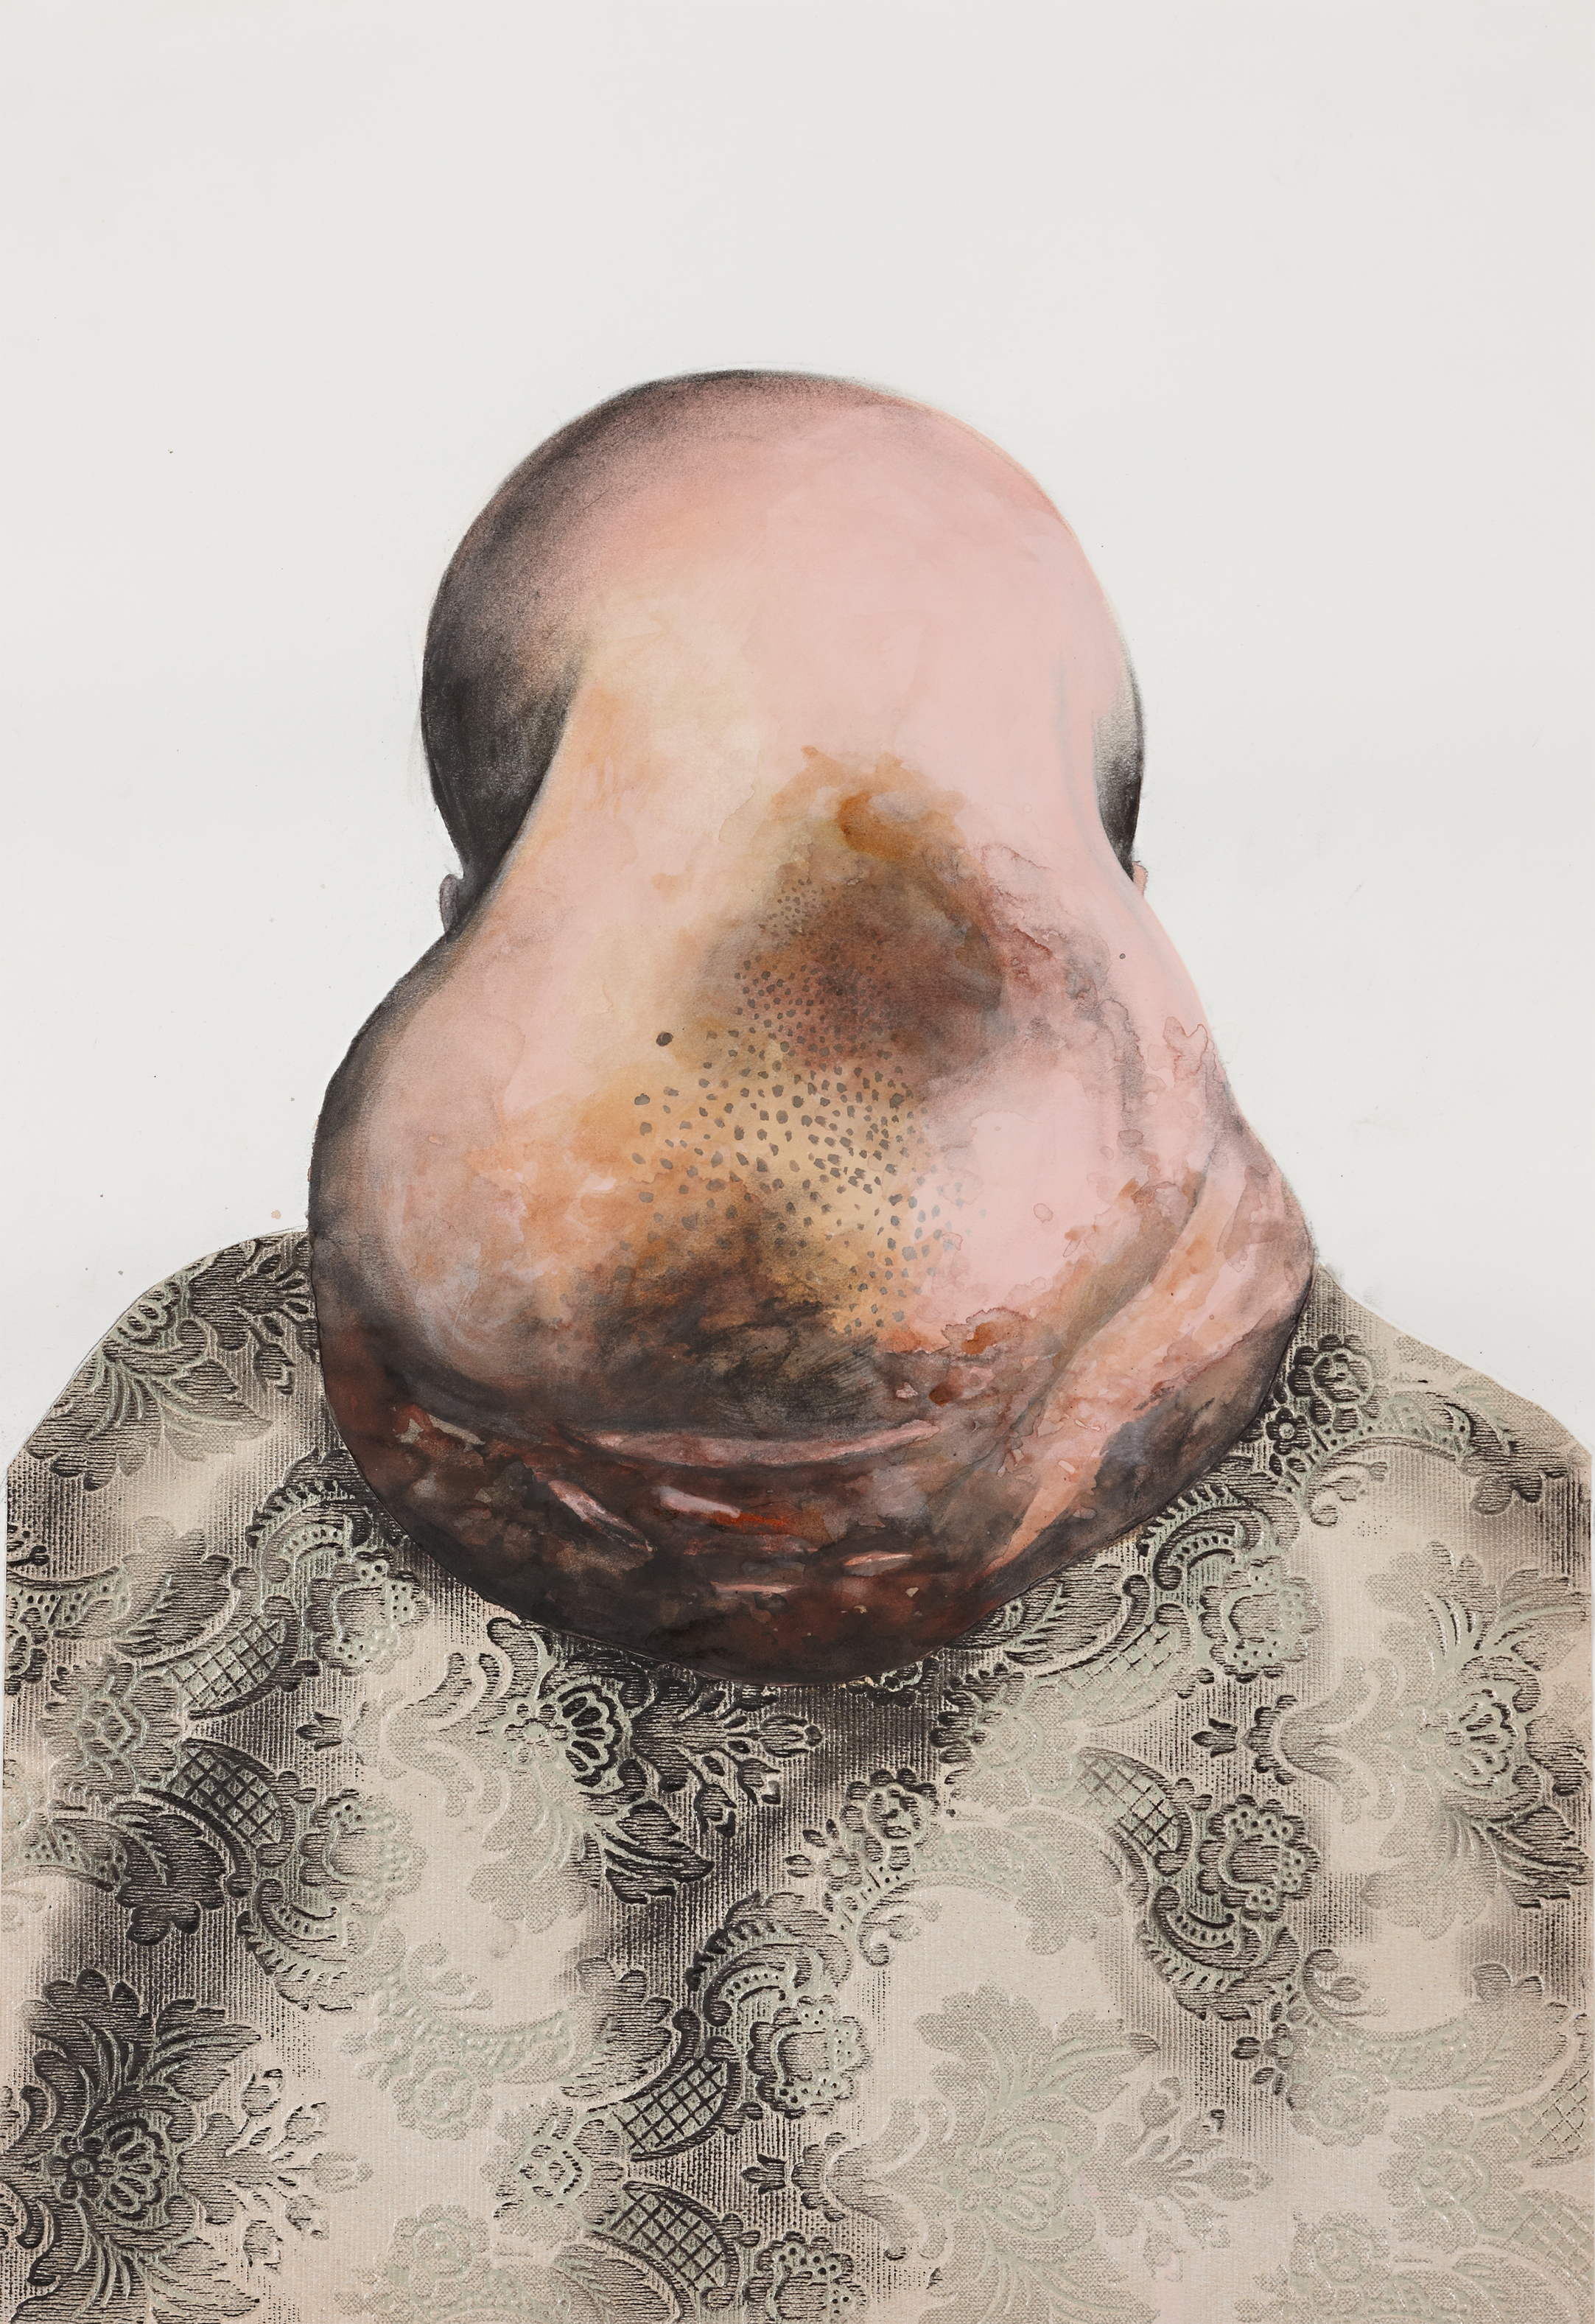 Man with large lump on head